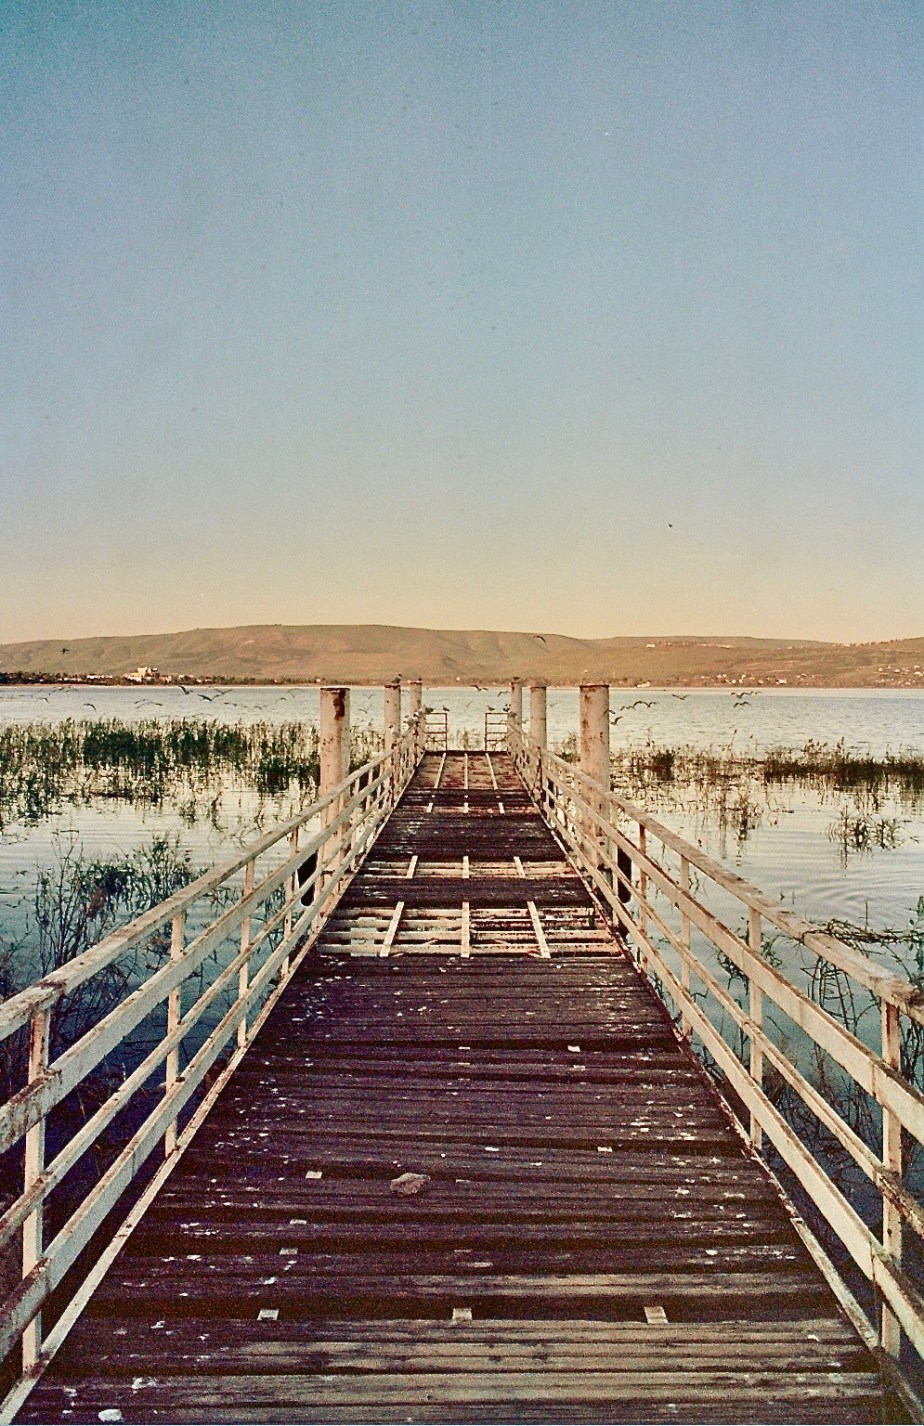 Sea of Galilee Ektachrome 100